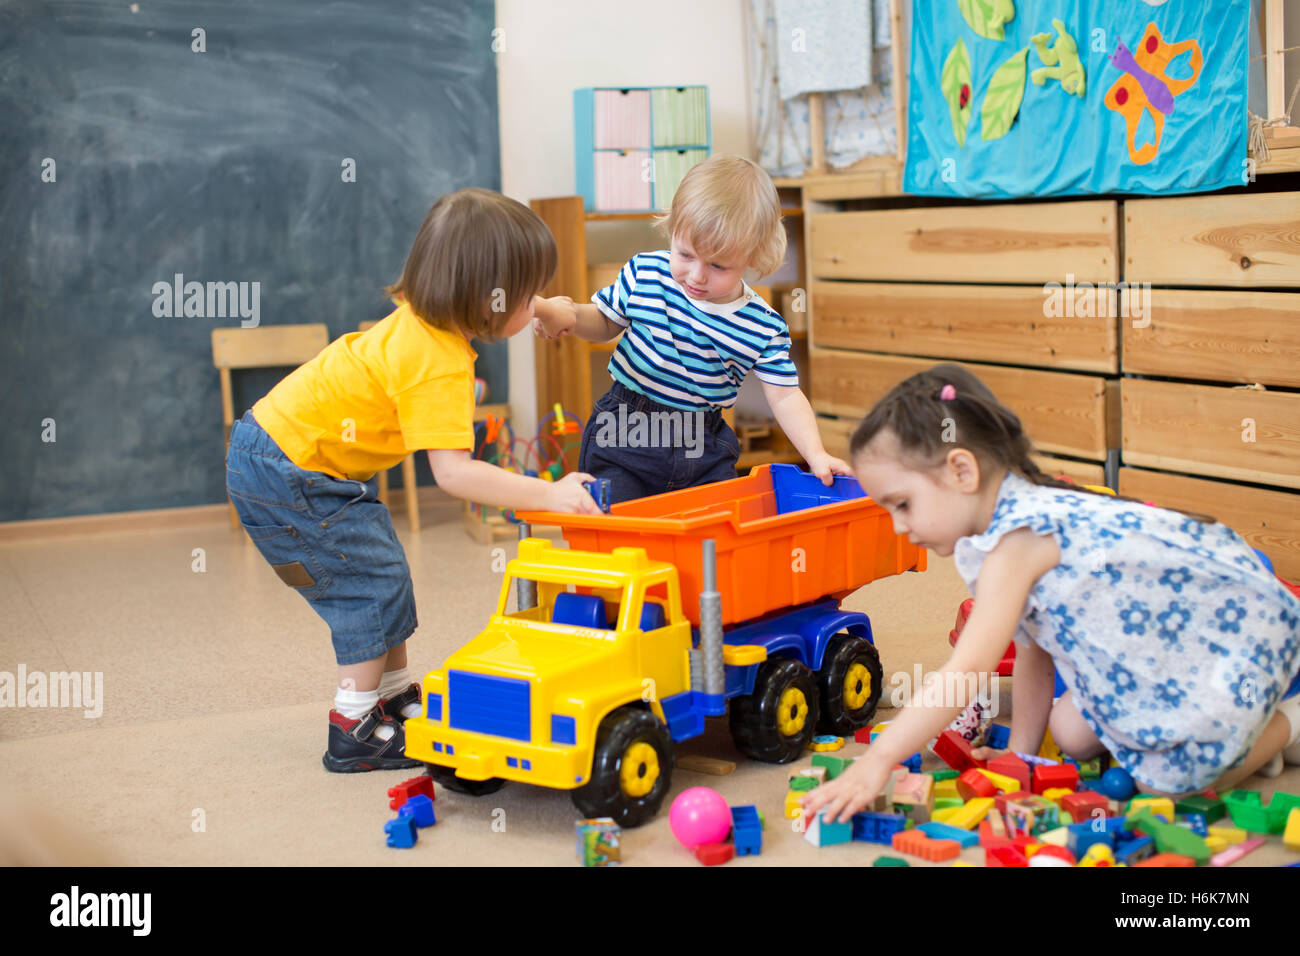 two kids conflict for toy truck in kindergarten - Stock Image